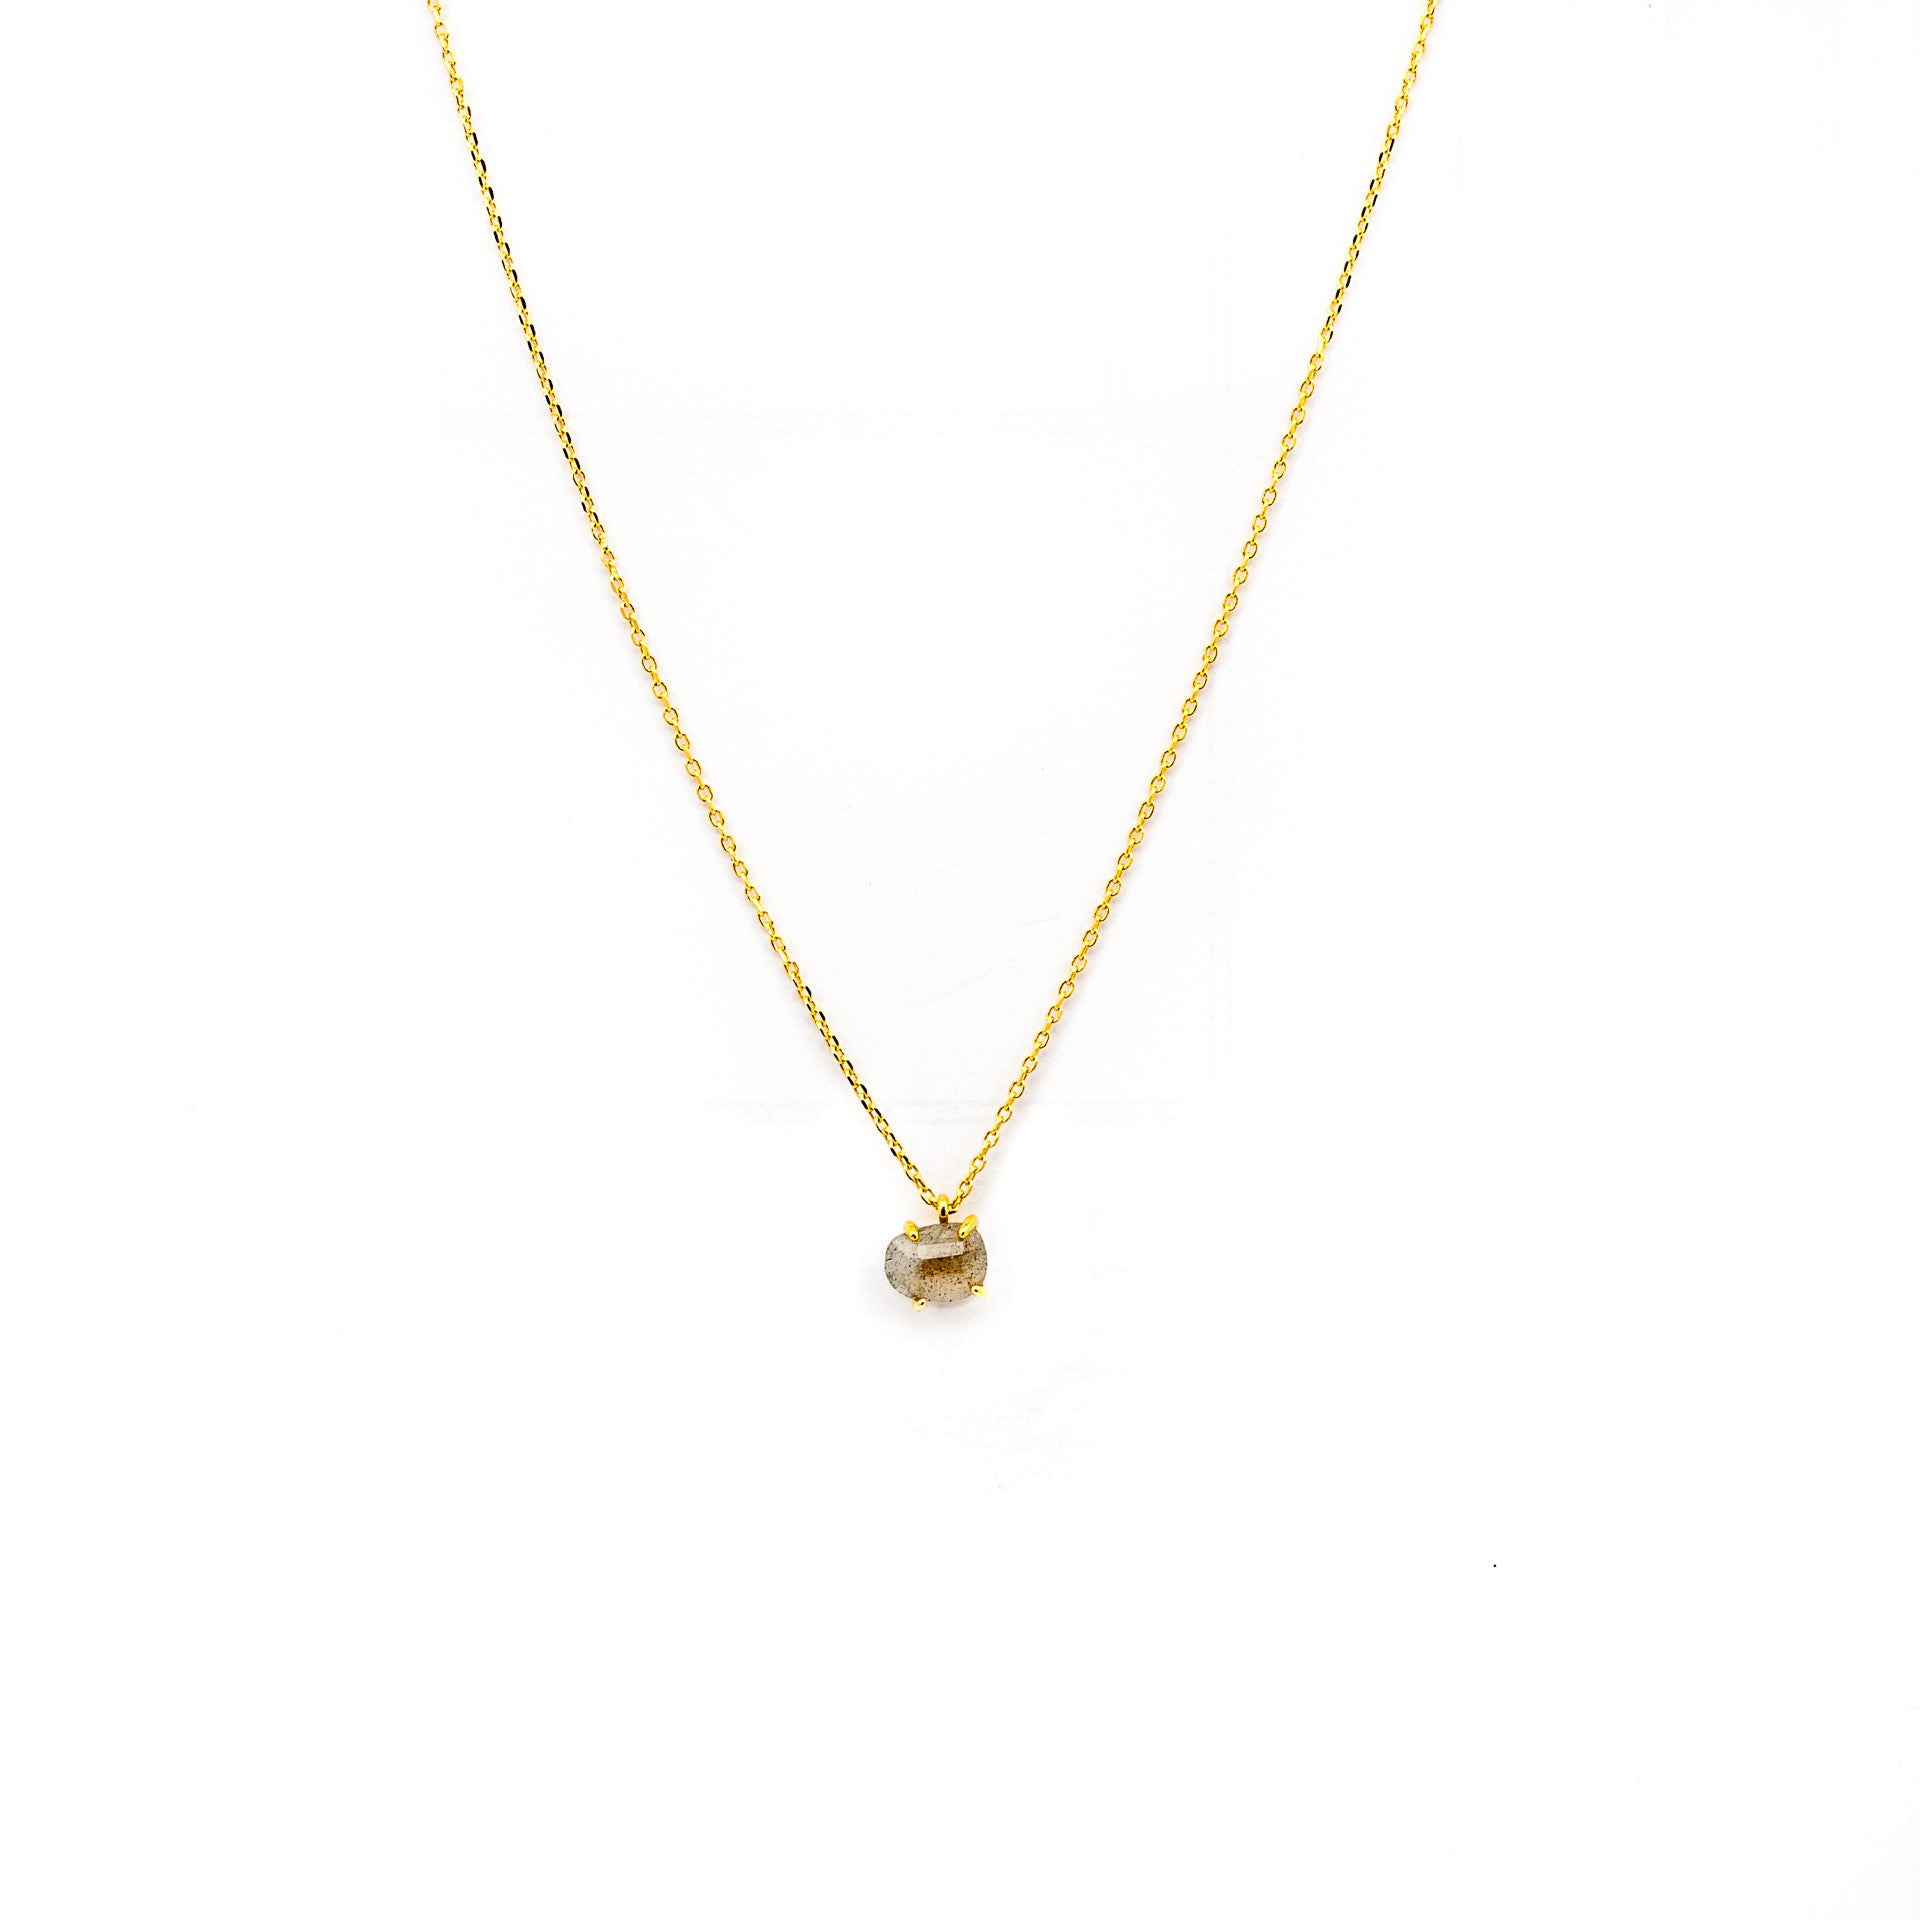 GOLD LABRADORITE PRONG SET PENDANT NECKLACE